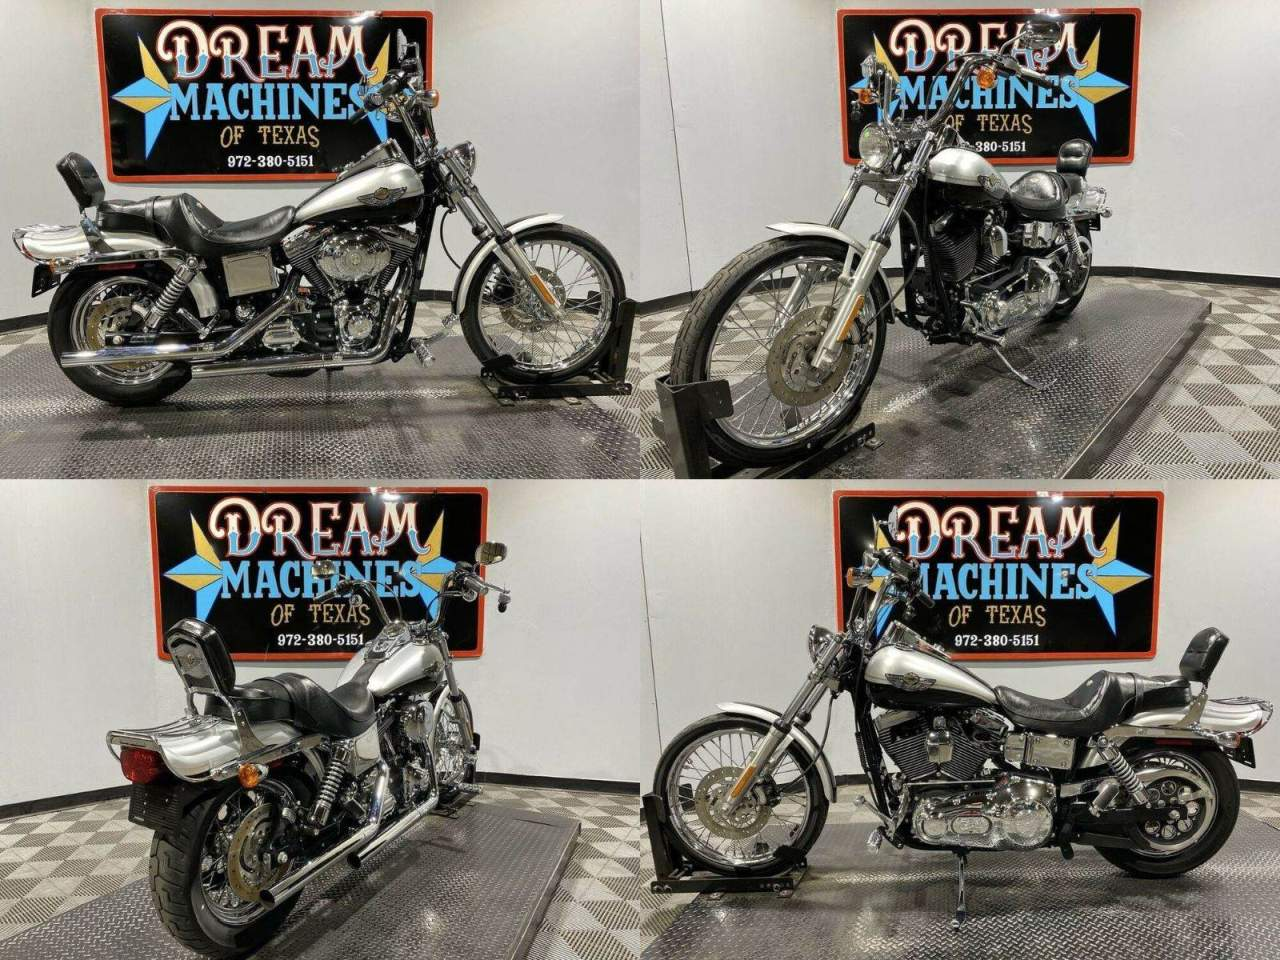 2003 Harley-Davidson FXDWG - Dyna Wide Glide 100th Anniversary Anniversary Siver used for sale near me